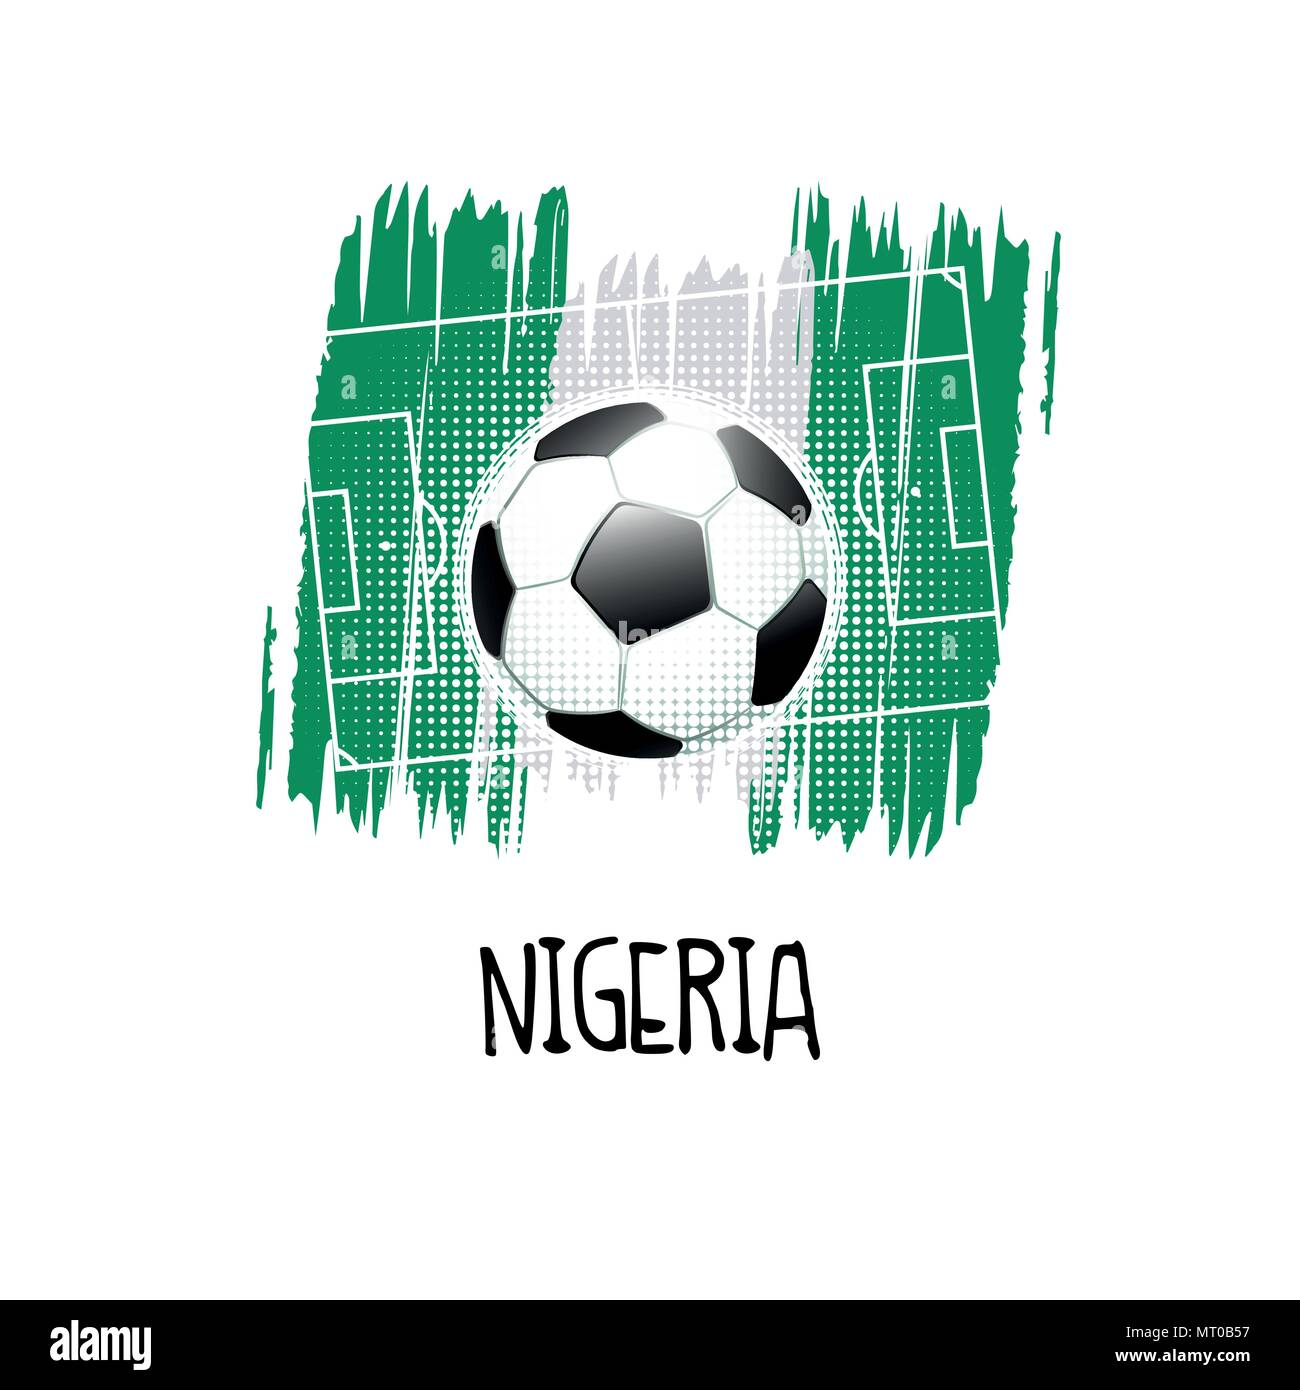 Hand written word 'Nigeria' with soccer ball, soccer field and abstract colors of the Nigerian flag. Vector illustration. - Stock Vector